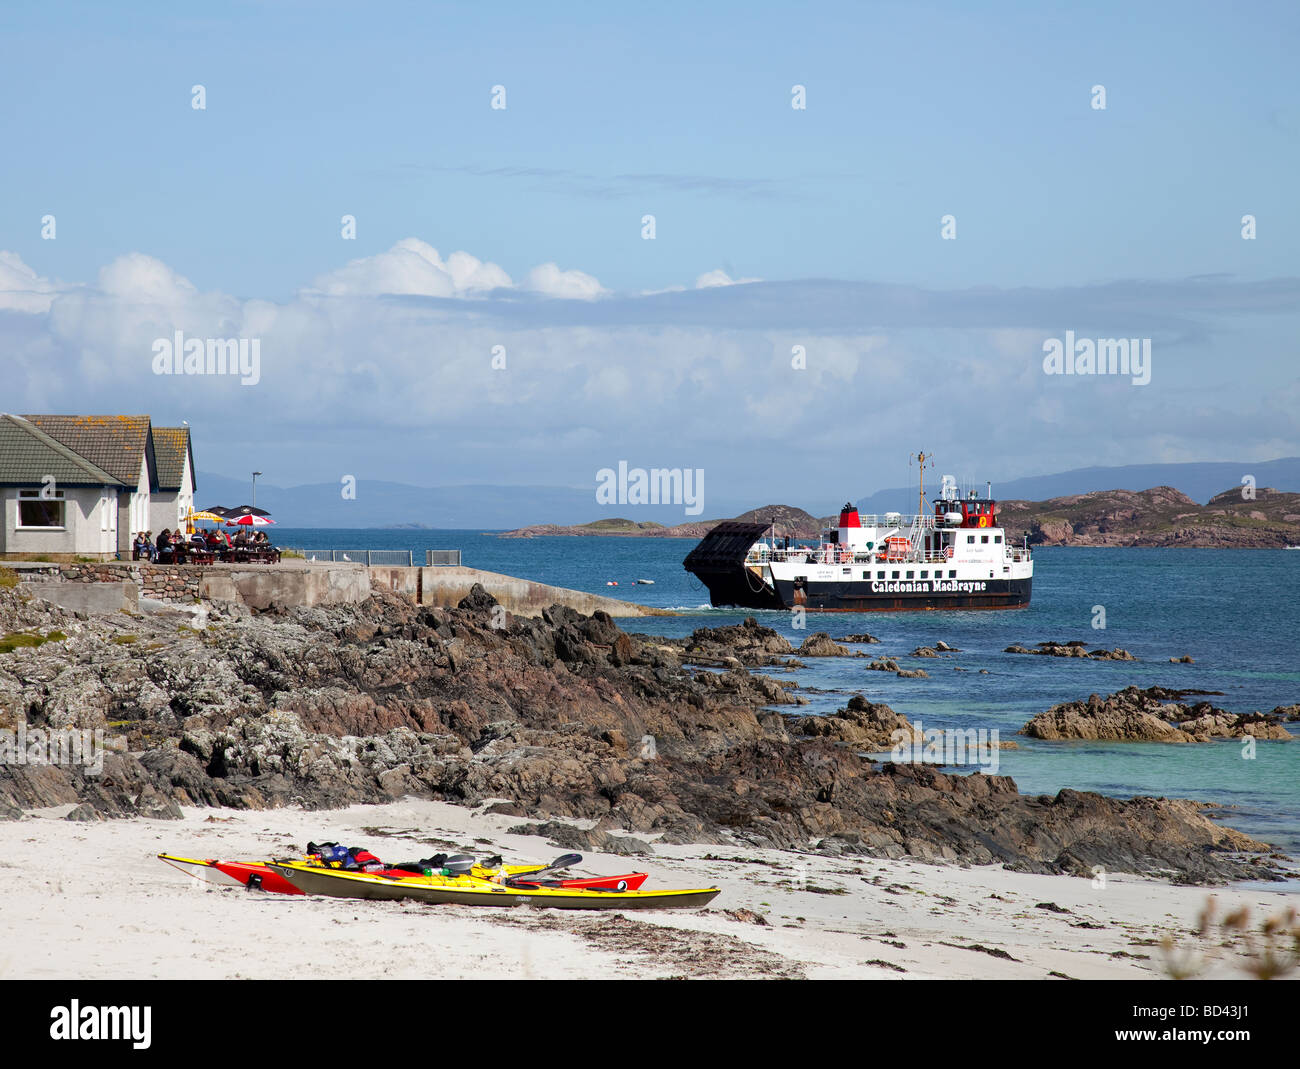 Iona ferry leaving the pier at Iona, a Hebridean island off the west coast of Mull, Scotland, UK - Stock Image